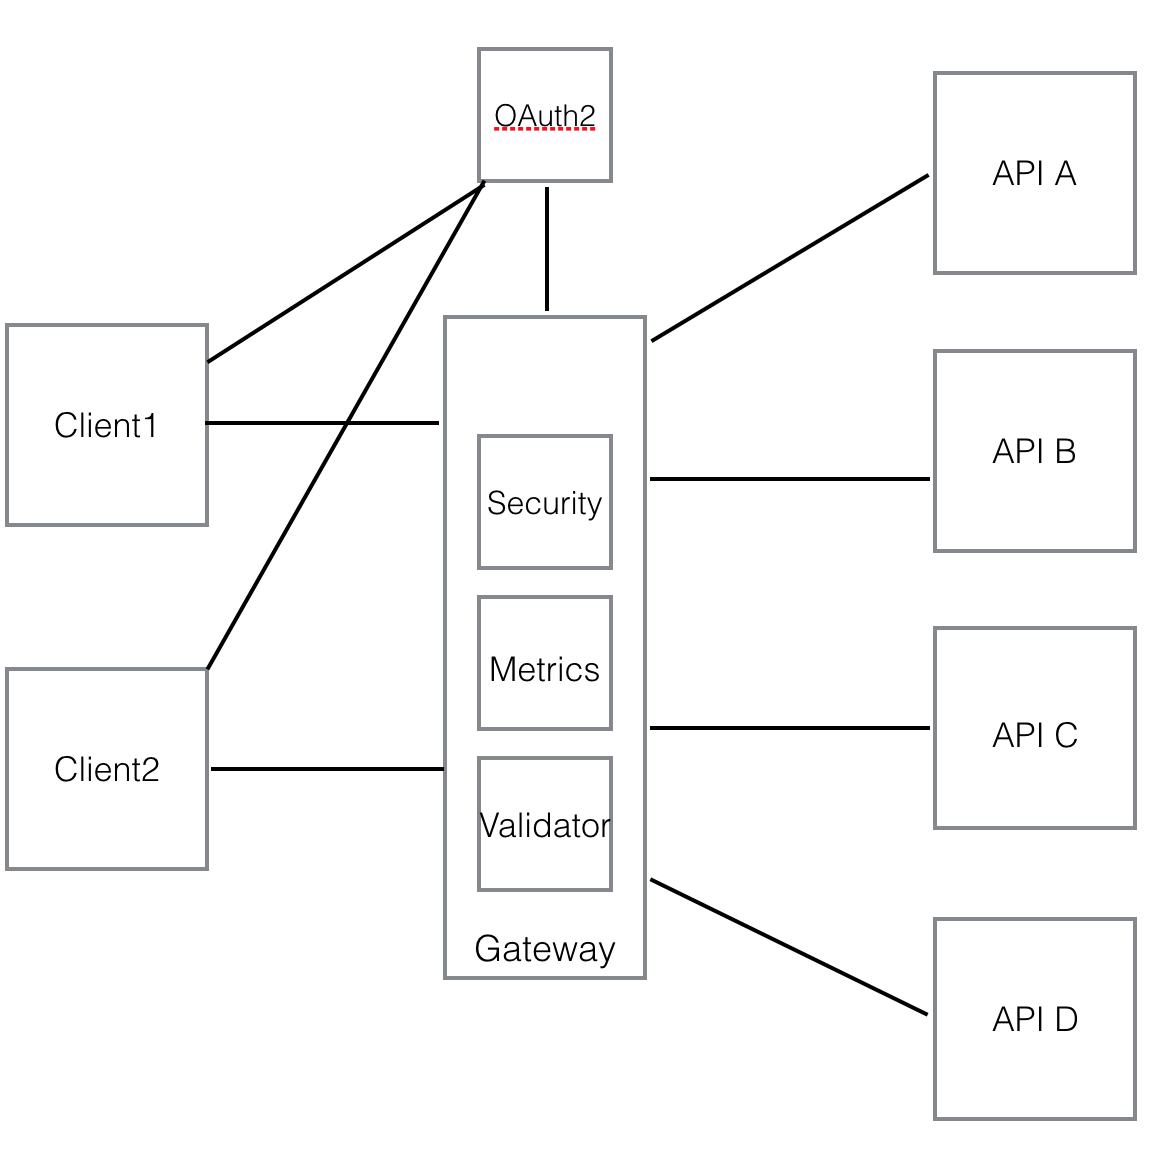 ms_oauth2_gateway